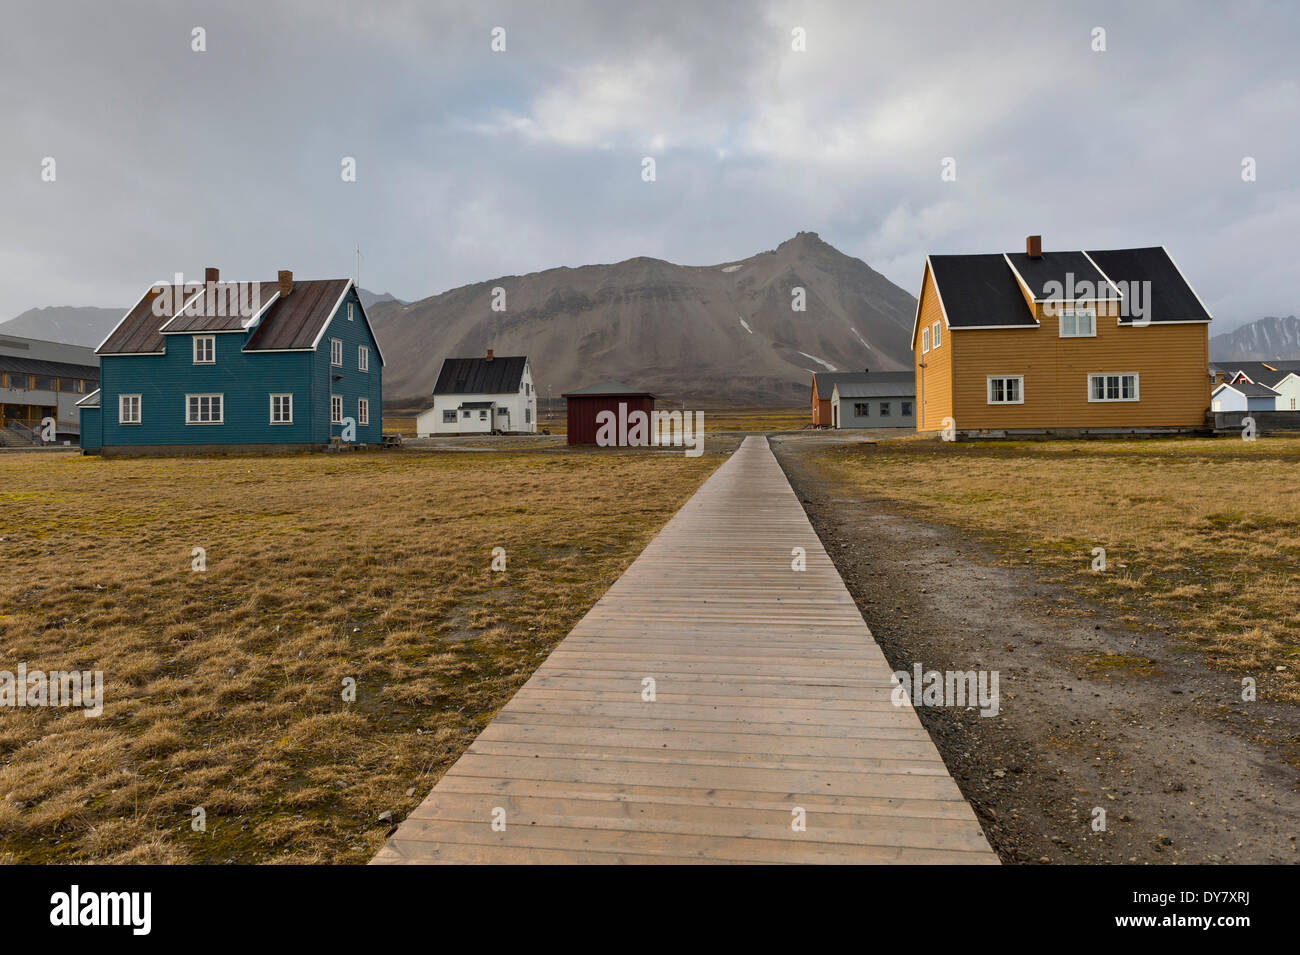 Boardwalk and houses, Ny-Alesund, Spitsbergen, Svalbard Islands, Svalbard and Jan Mayen, Norway - Stock Image